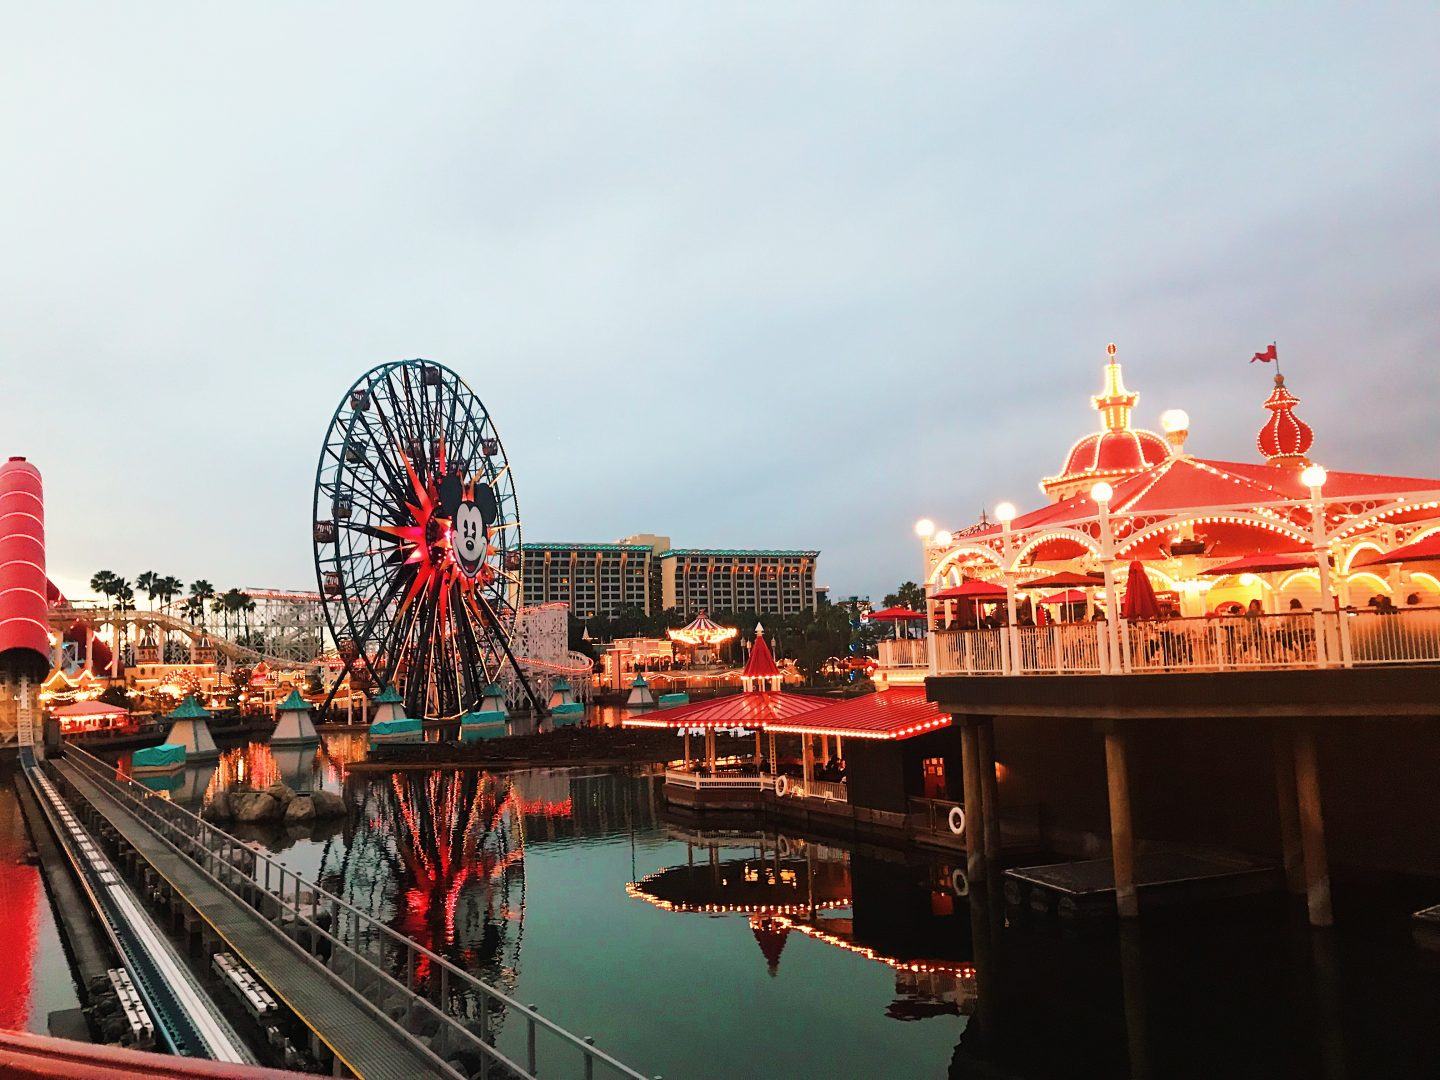 Sunset view of the Disneyland Pier in Los Angeles